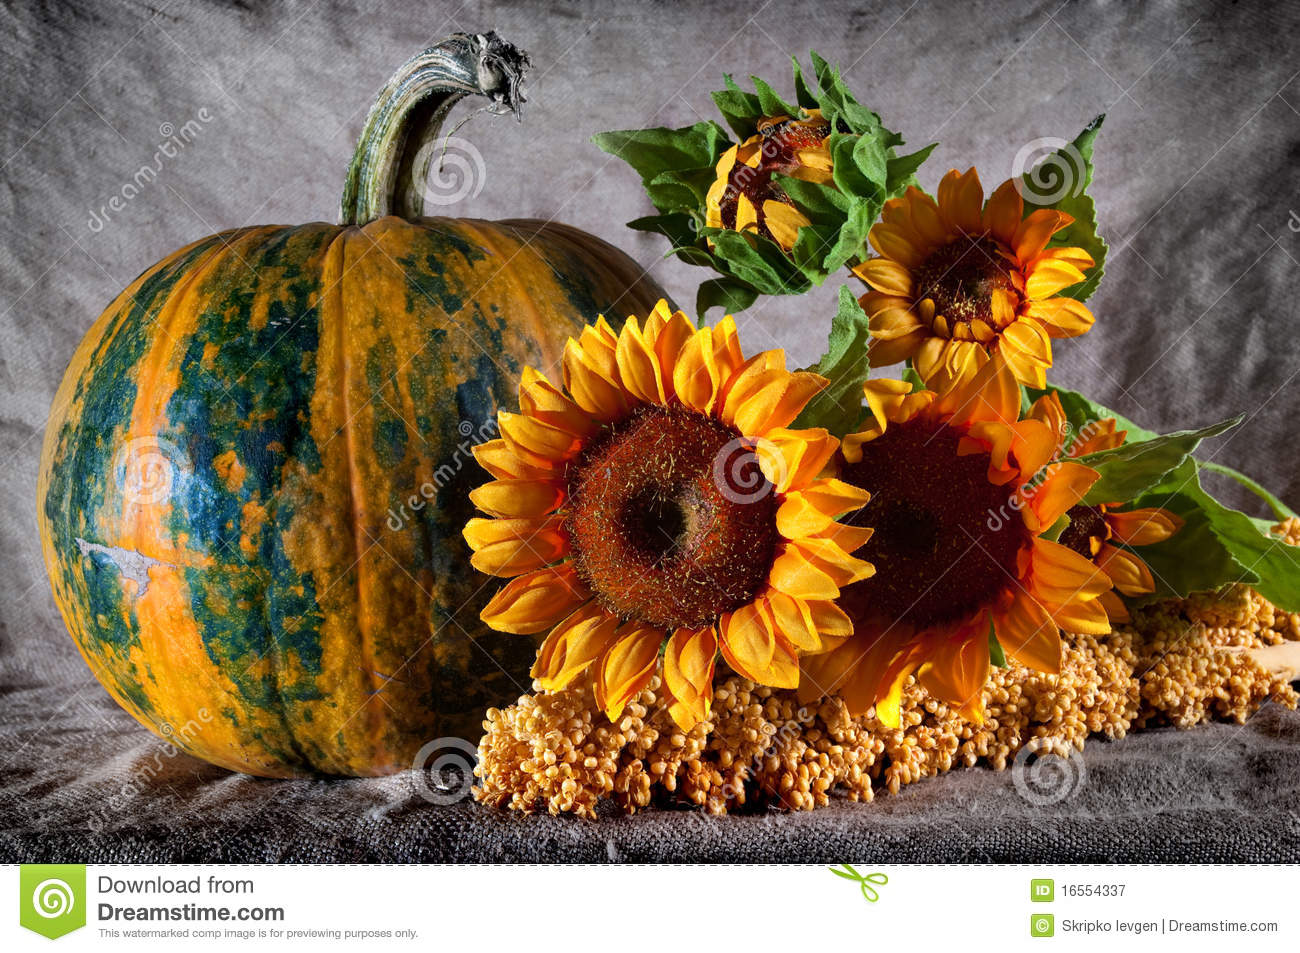 Free Fall Harvest Wallpaper Still Life With Pumpkin And Sunflowers Royalty Free Stock